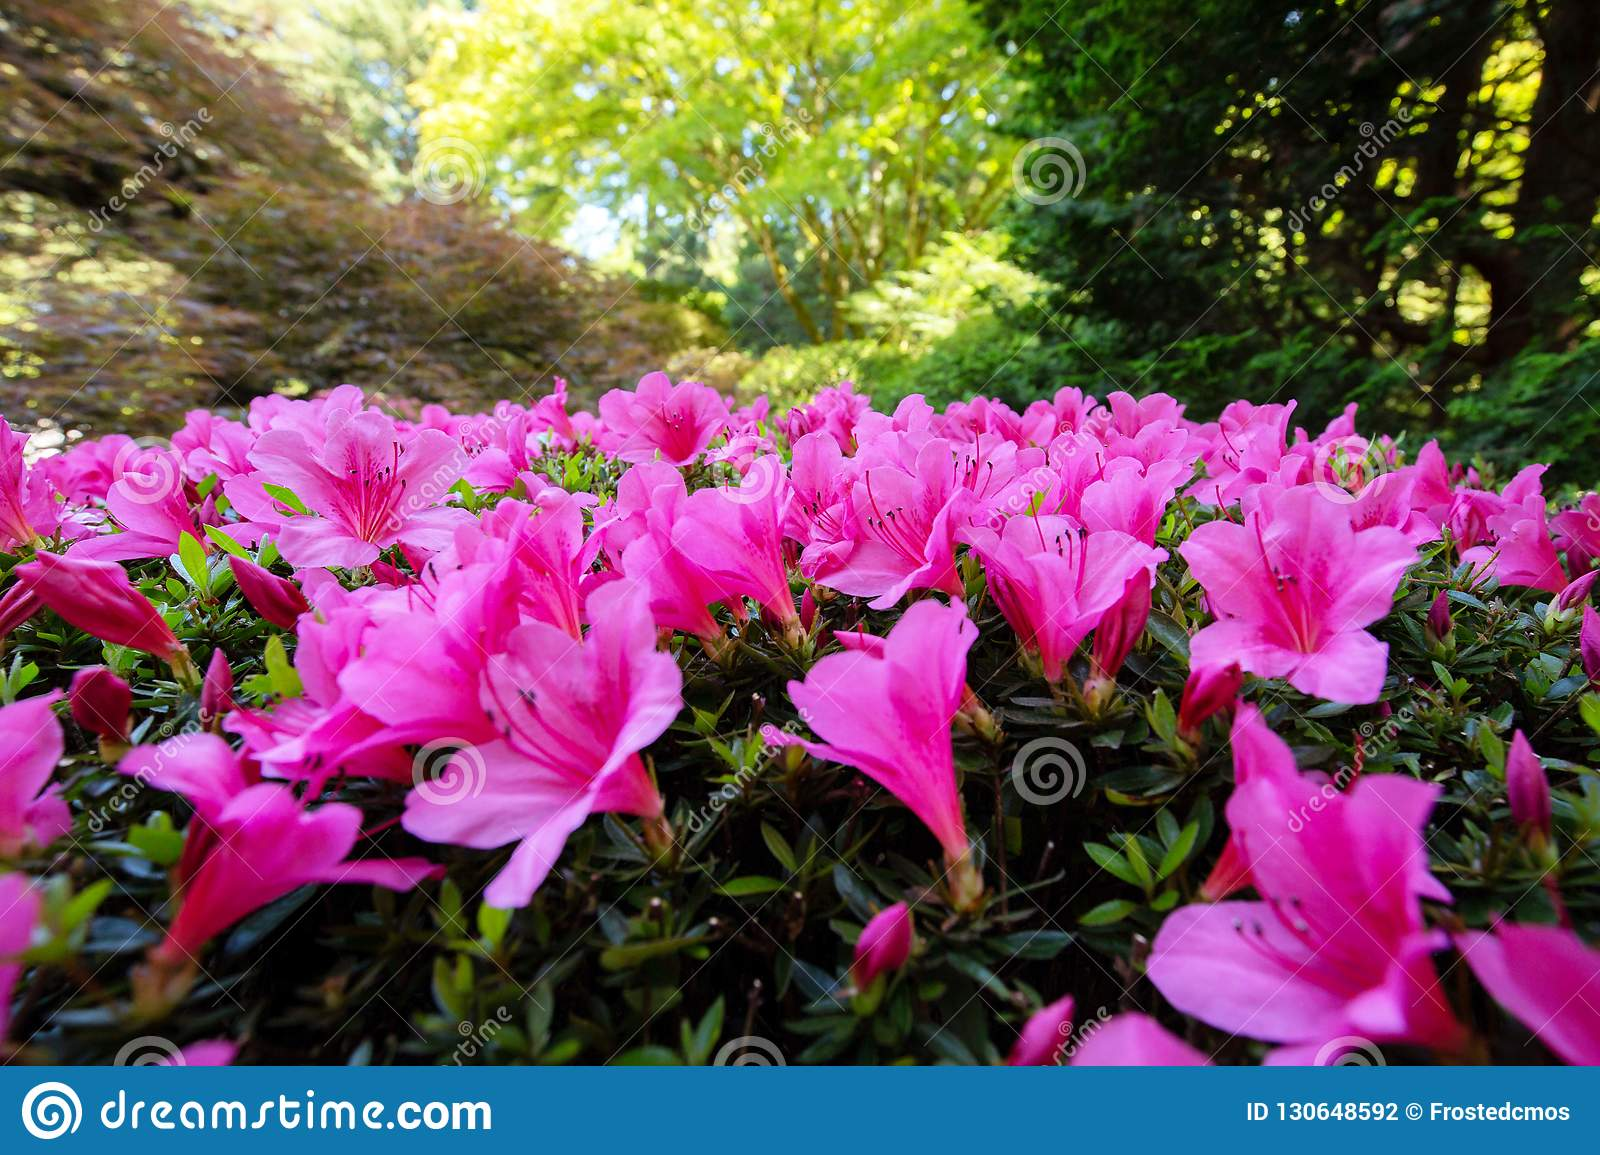 Rhododendron Pink Flower Bush Up Close Stock Photo Image Of Bush